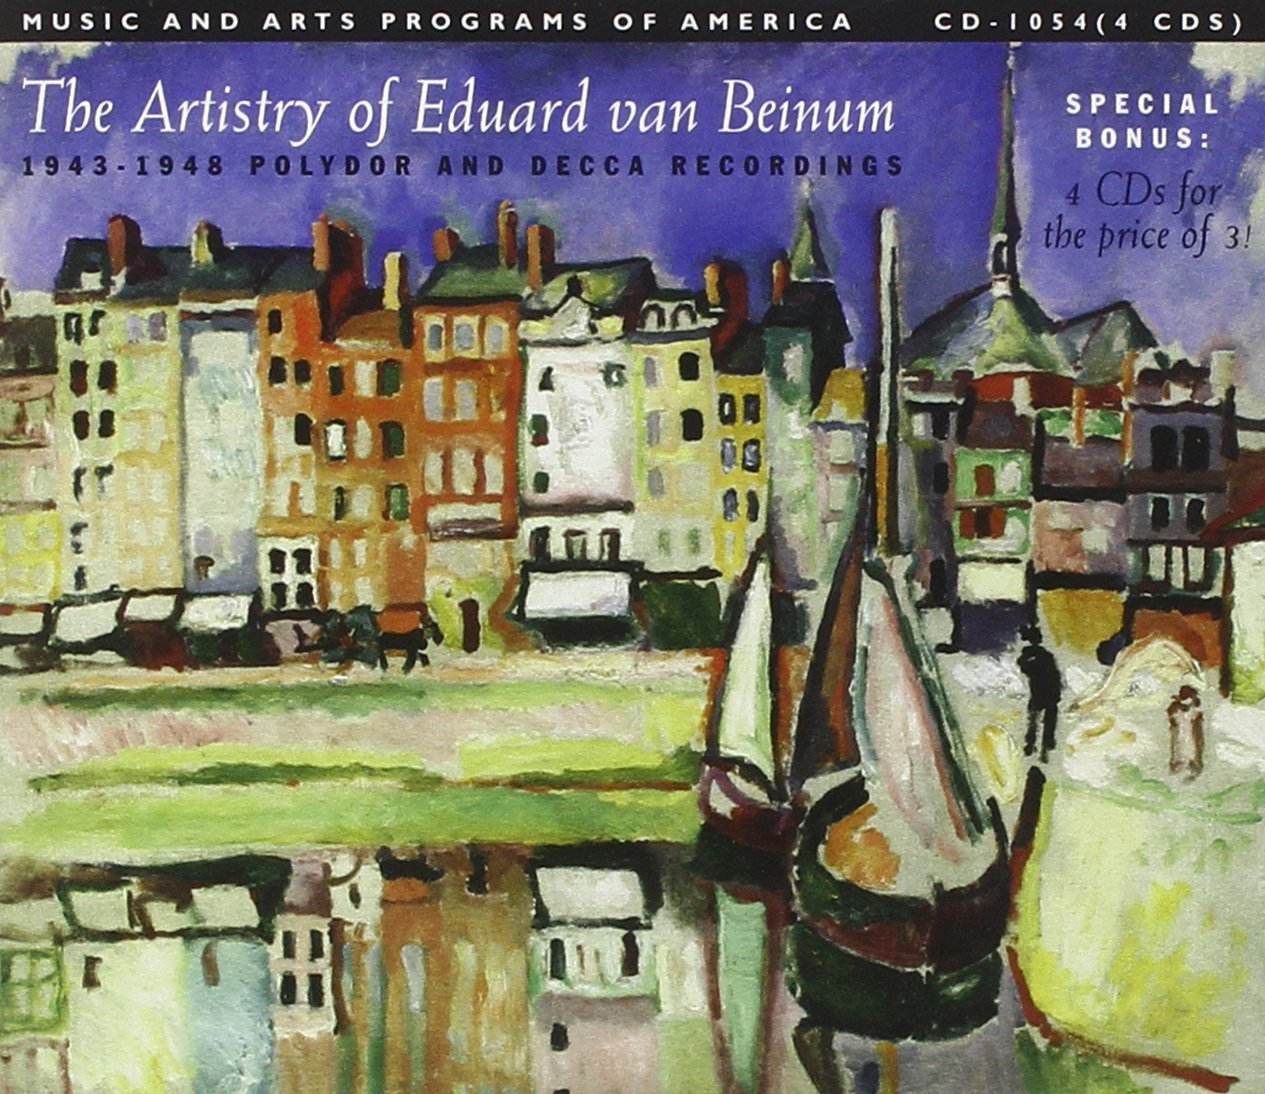 Popular brand in the world The Artistry New life of Eduard van Beinum and Polydor 1943-1948 R Decca